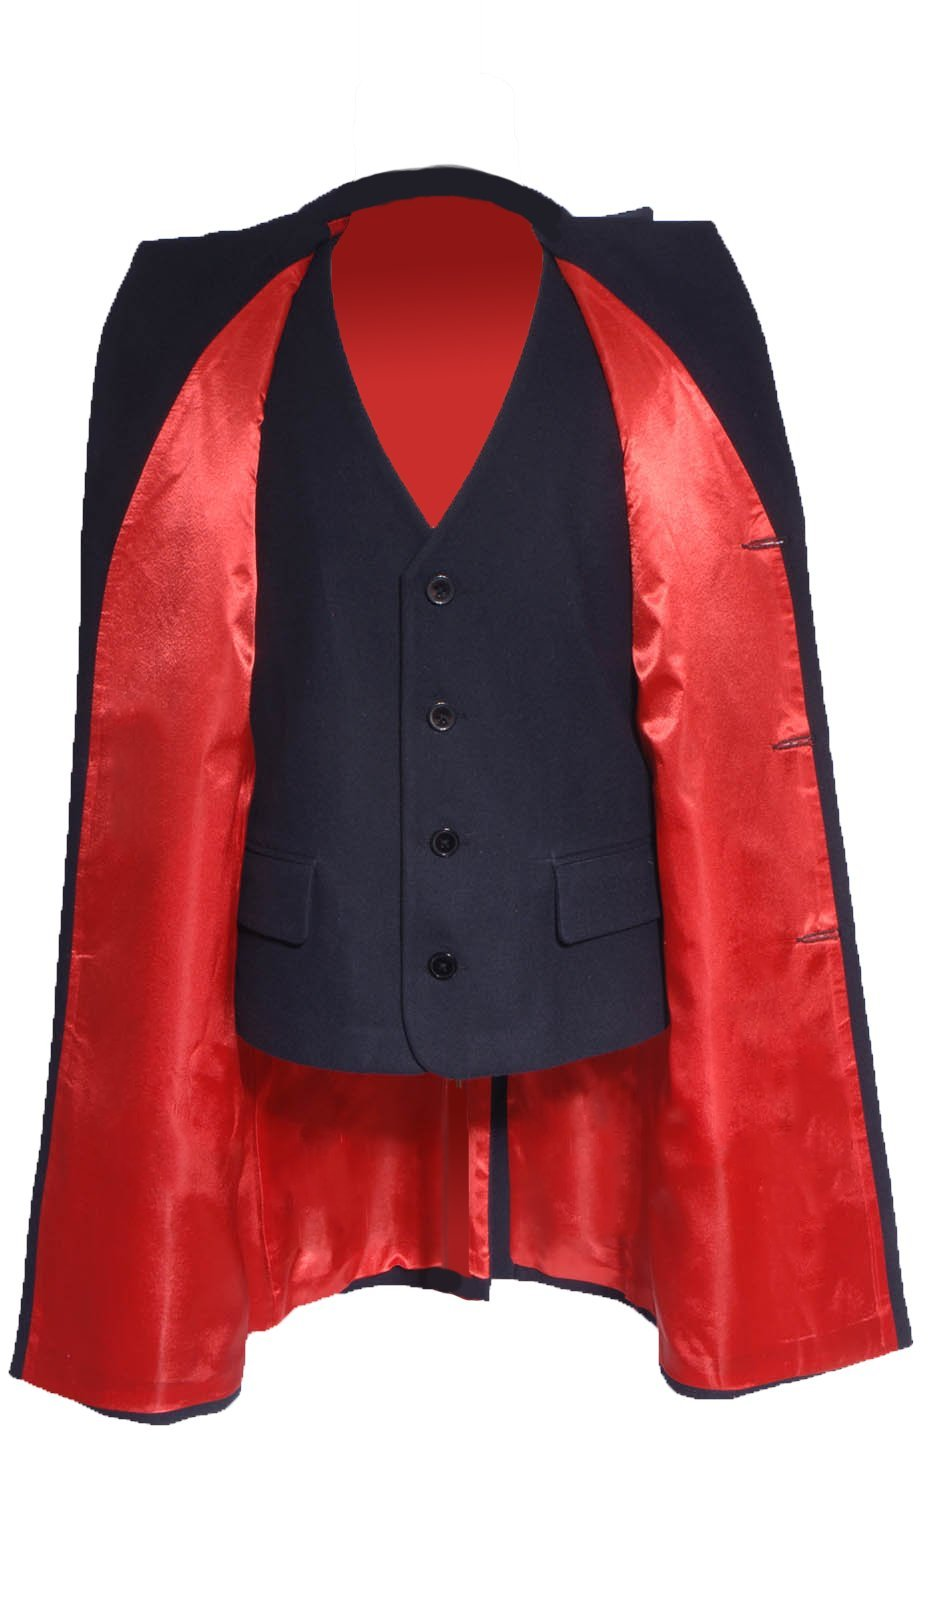 Cosdaddy 12th Doctor Trench Coat Costume for Doctor the Who (M, Coat+vest)